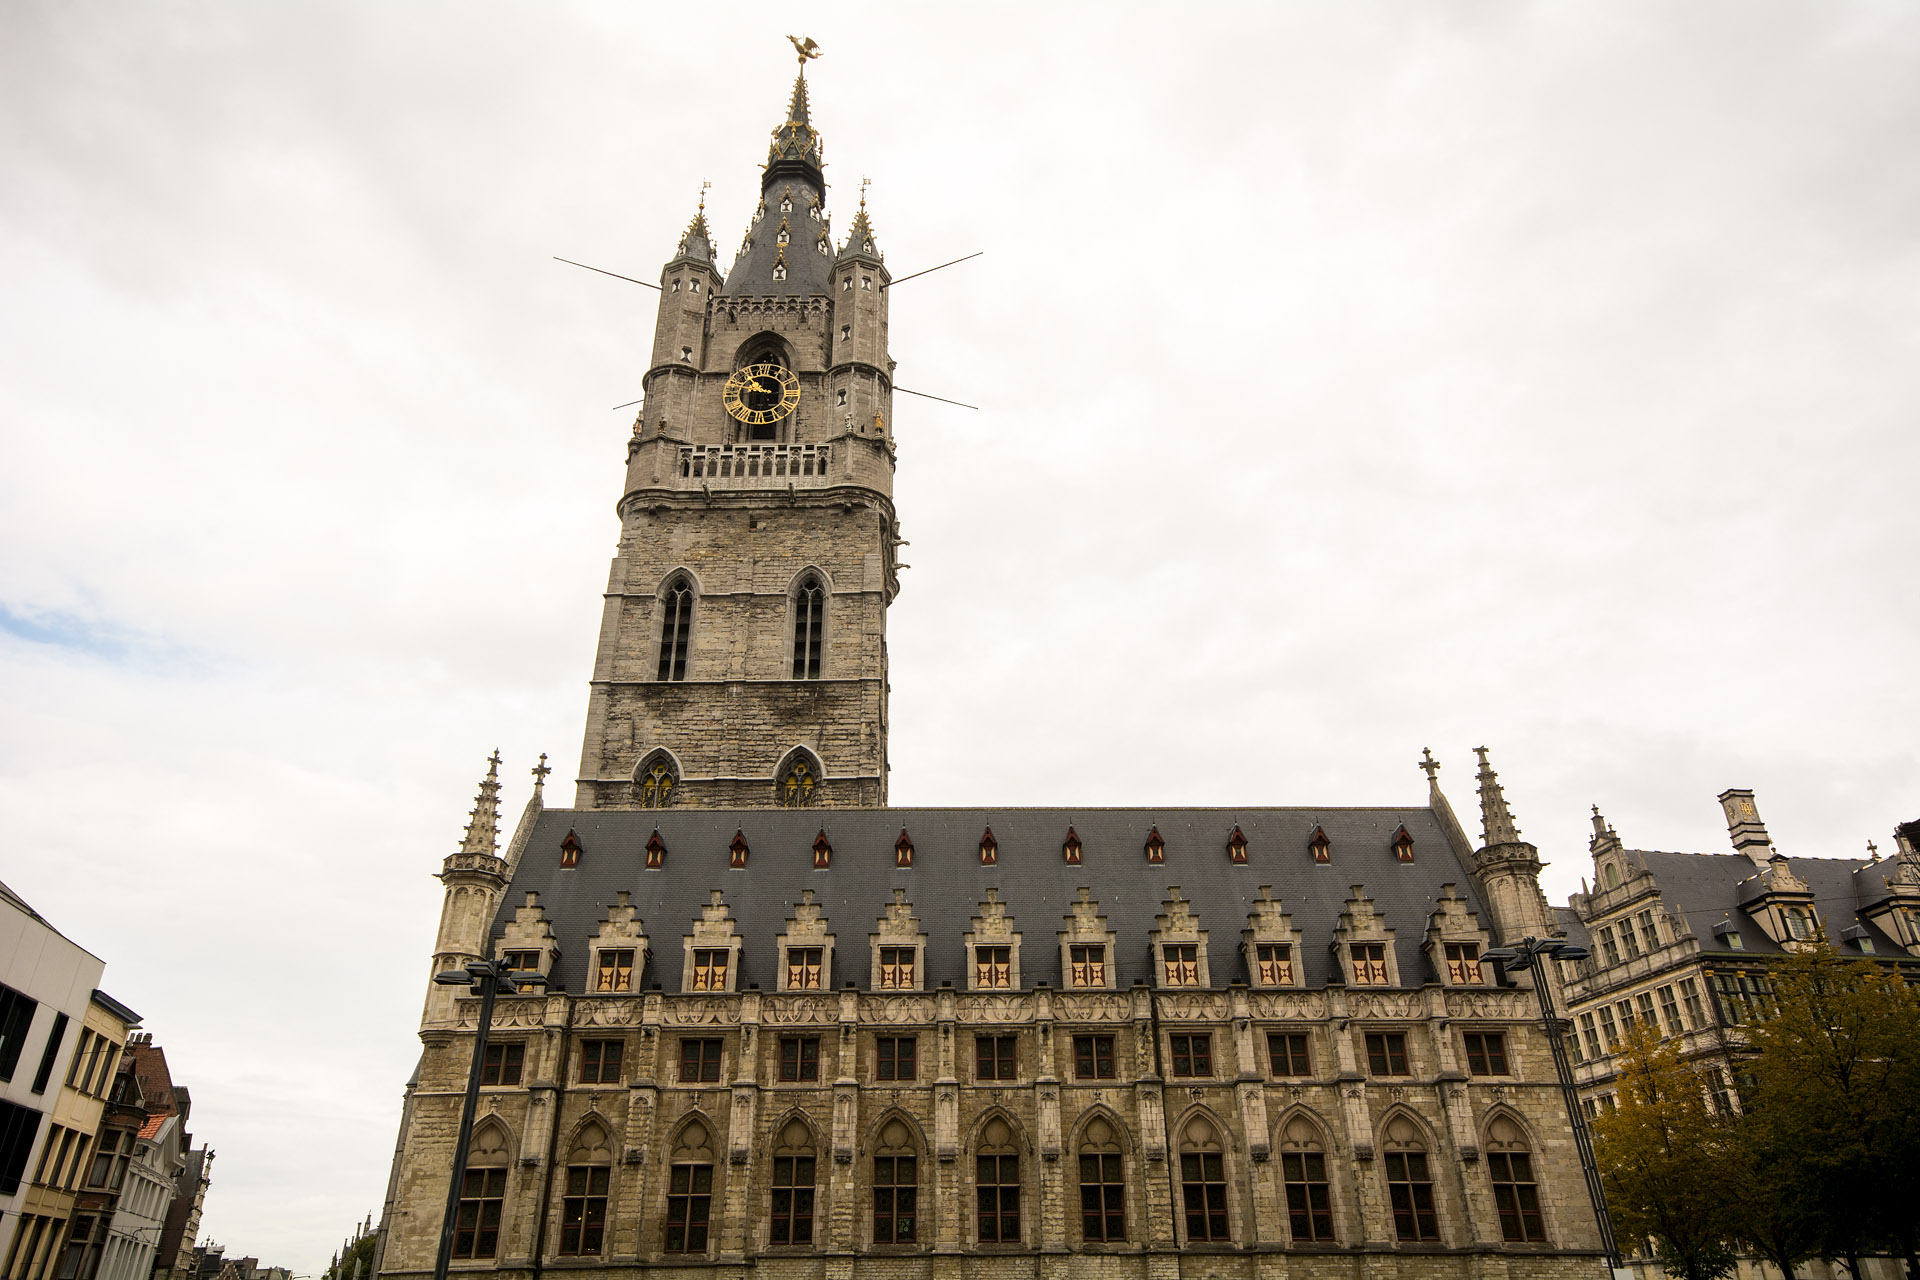 Belfry of Ghent & Lakenhalle (Cloth Hall)